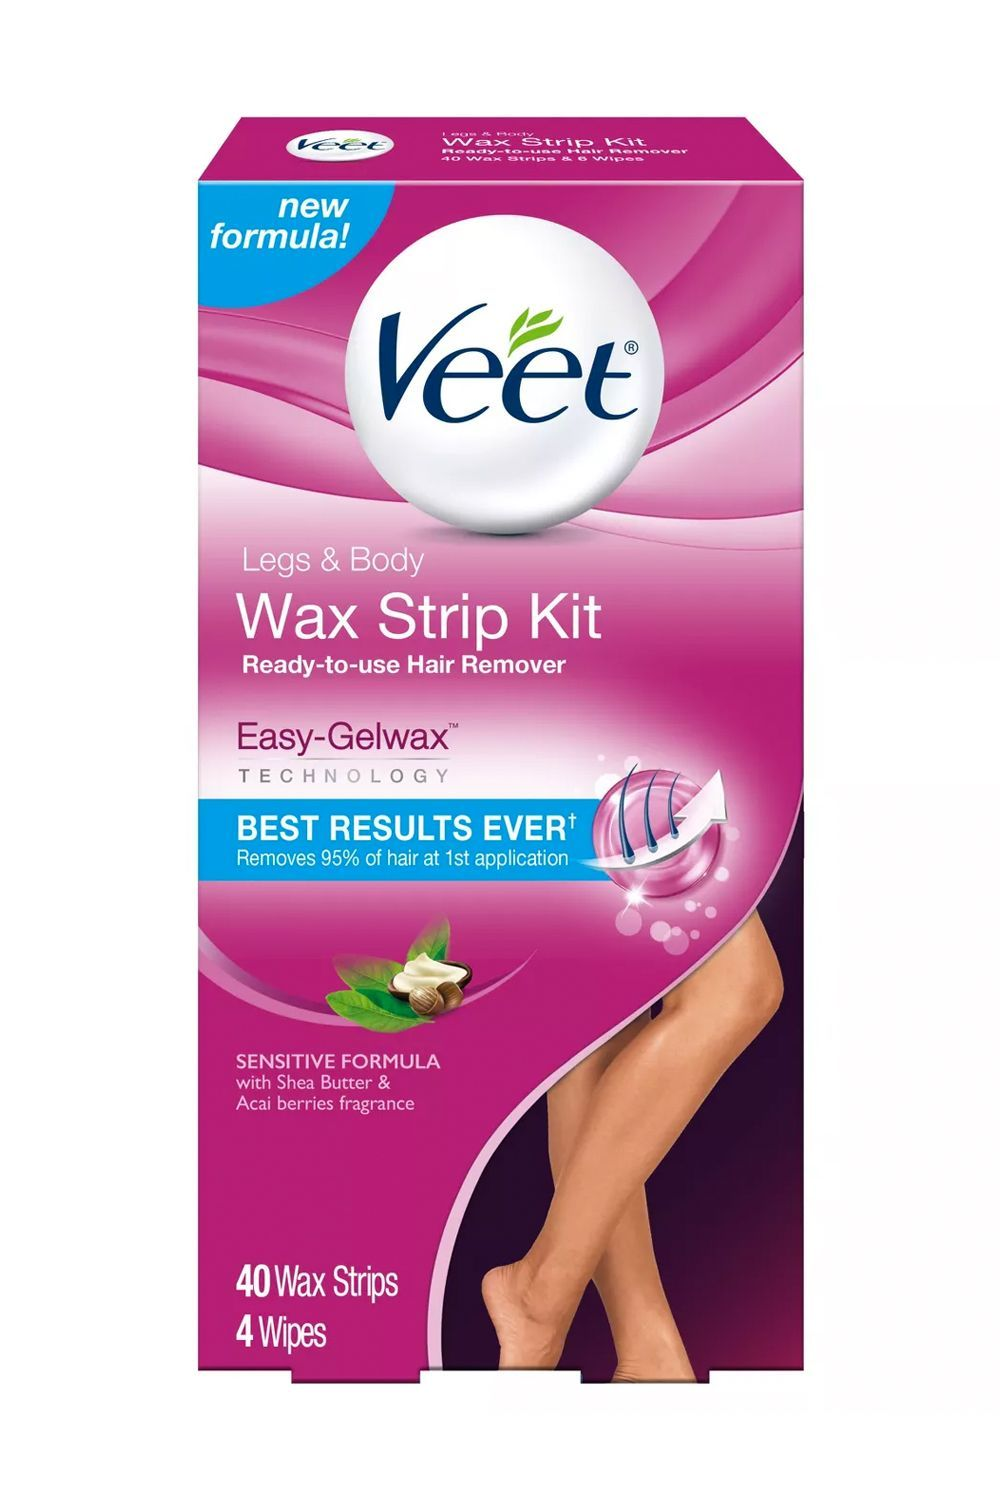 9 Best Home Waxing Kits For Face Bikini And Legs In 2020